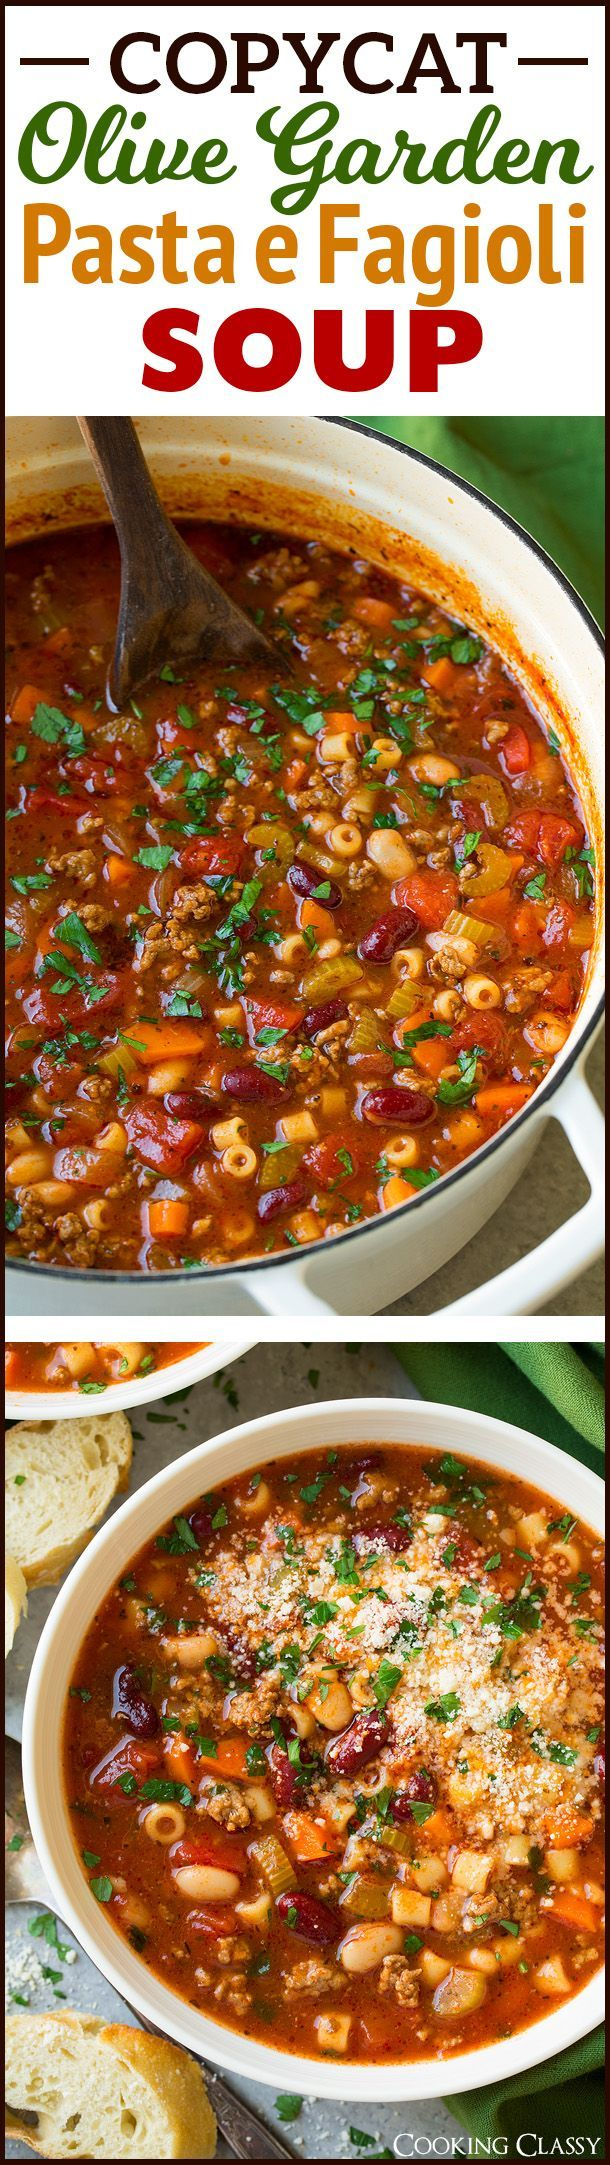 56 best **The Best COPYCAT RECIPES!** images on Pinterest   Cooking ...